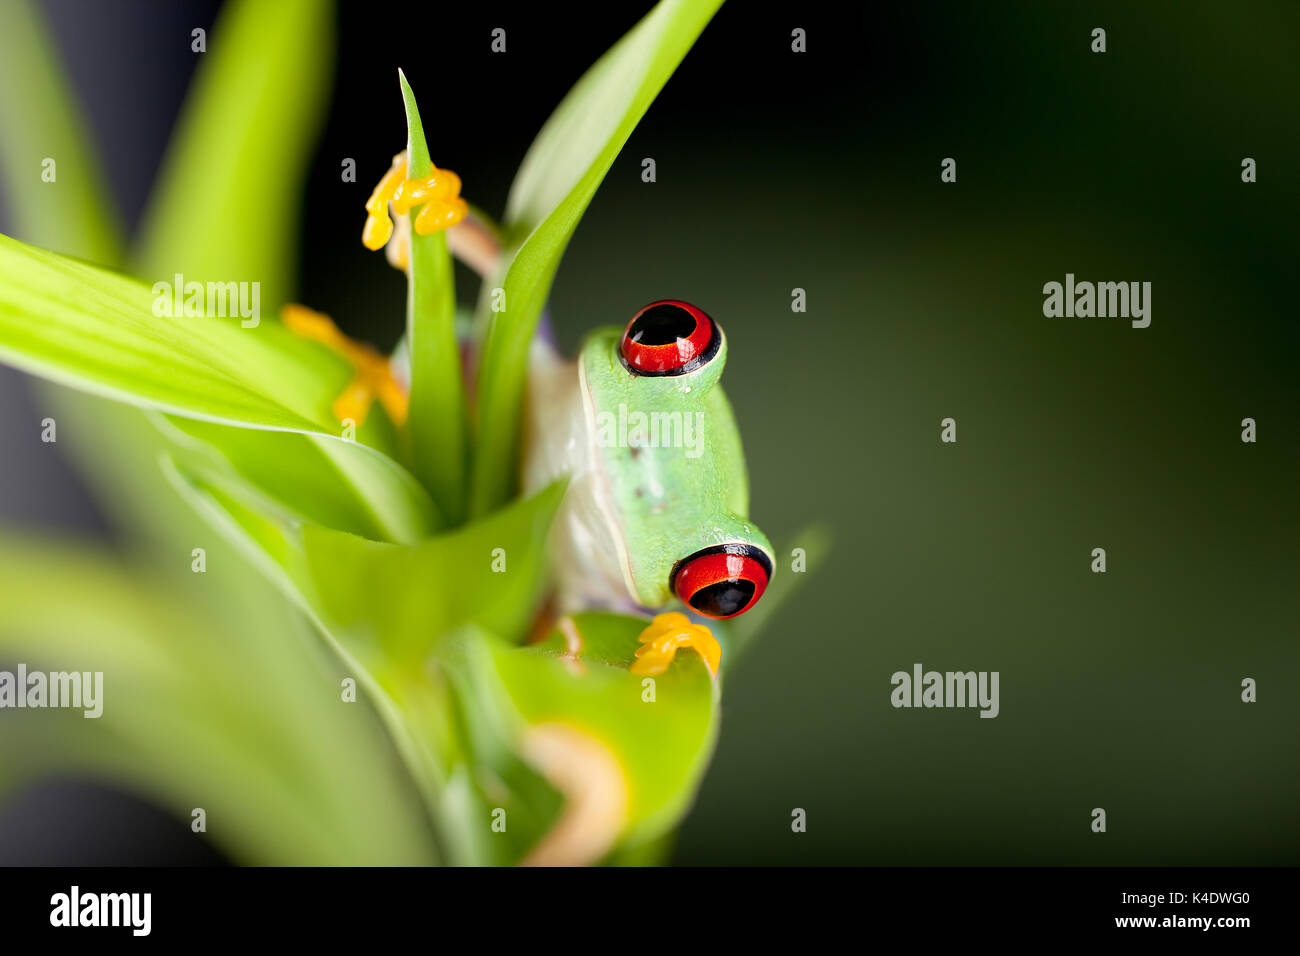 Red eyed tree frog on bamboo branch Stock Photo